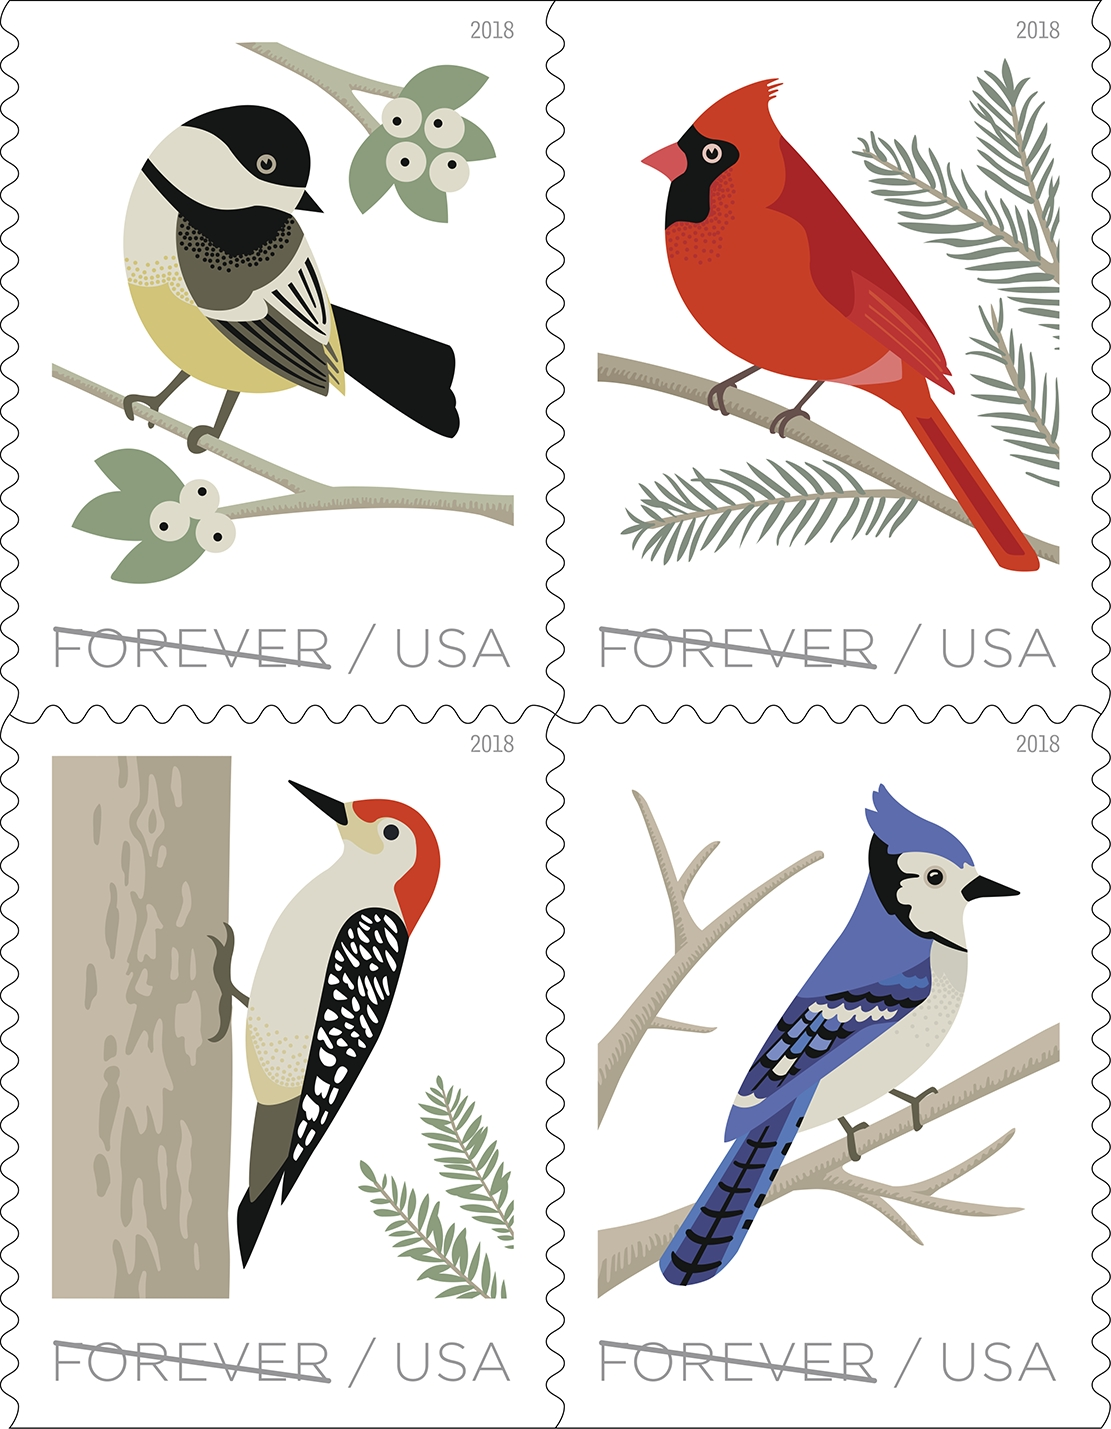 Birds in Winter: Birds in Winter celebrates four of winter's winged beauties: the black-capped chickadee (Poecile atricapillus), the northern cardinal (Cardinalis cardinalis), the blue jay (Cyanocitta cristata), and the red-bellied woodpecker (Melanerpes carolinus).  (USPS)